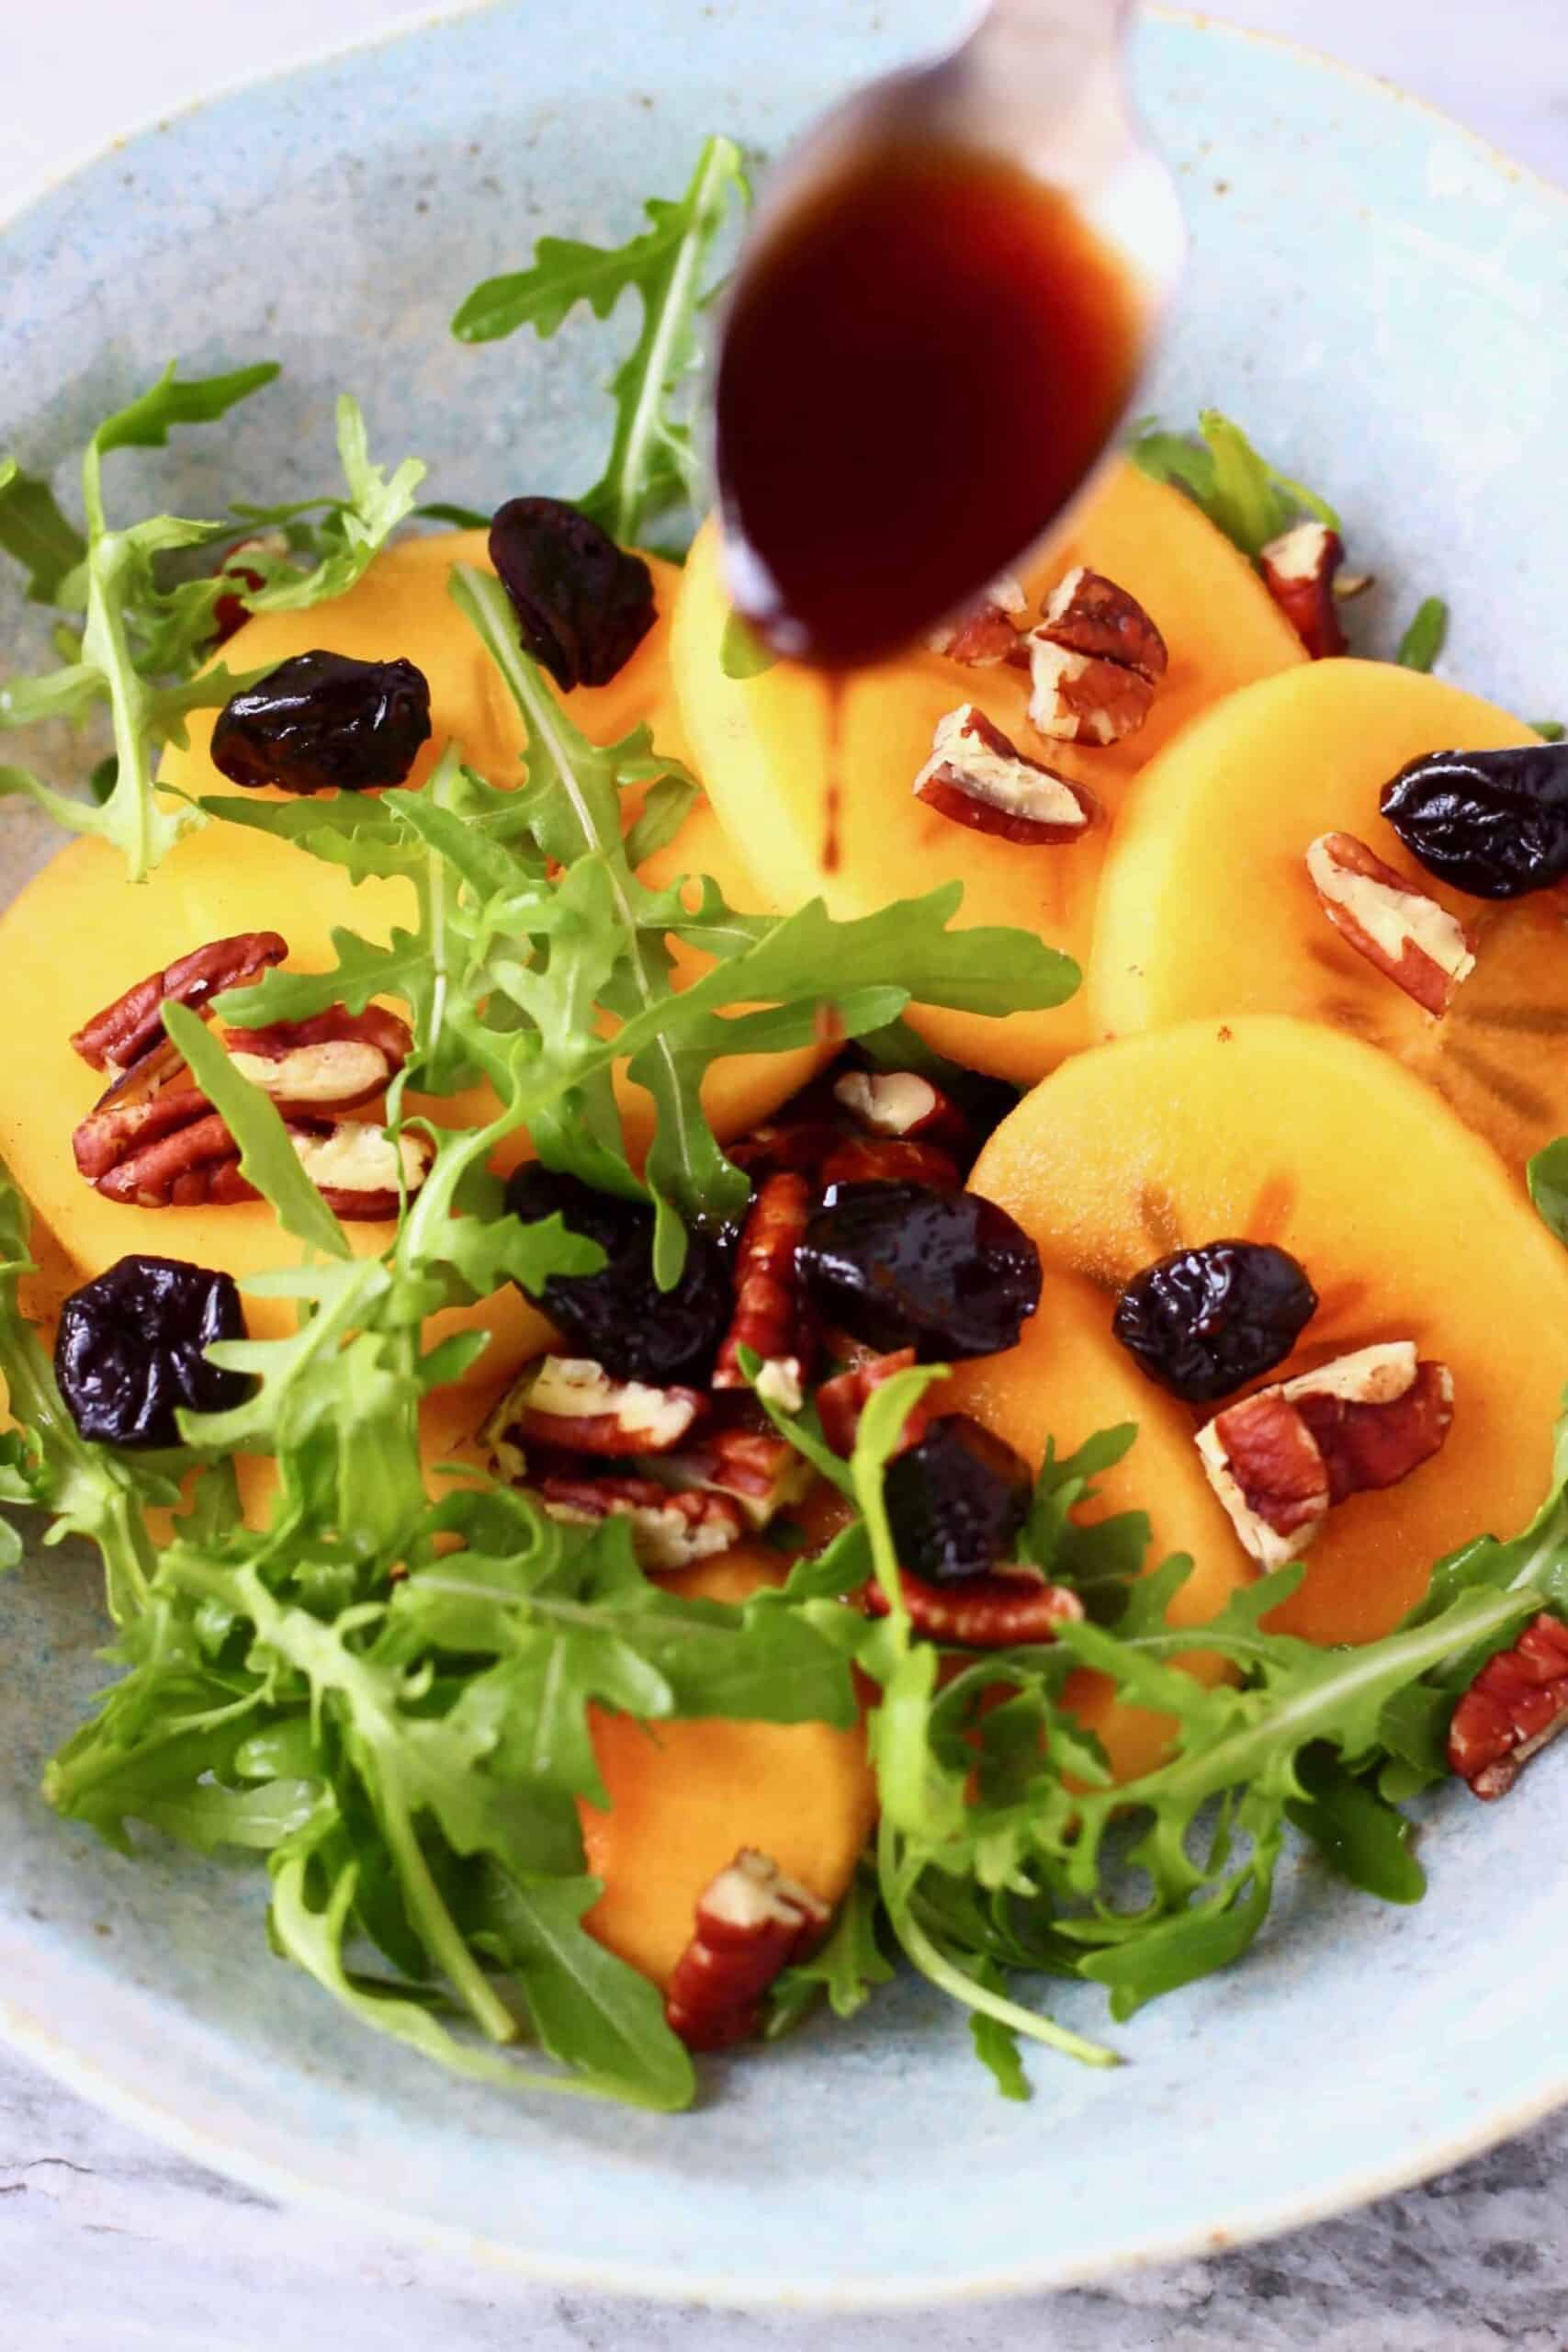 Persimmon salad with sliced persimmon, dried cherries, chopped pecan nuts and rocket in a bowl with a spoon pouring brown dressing over it